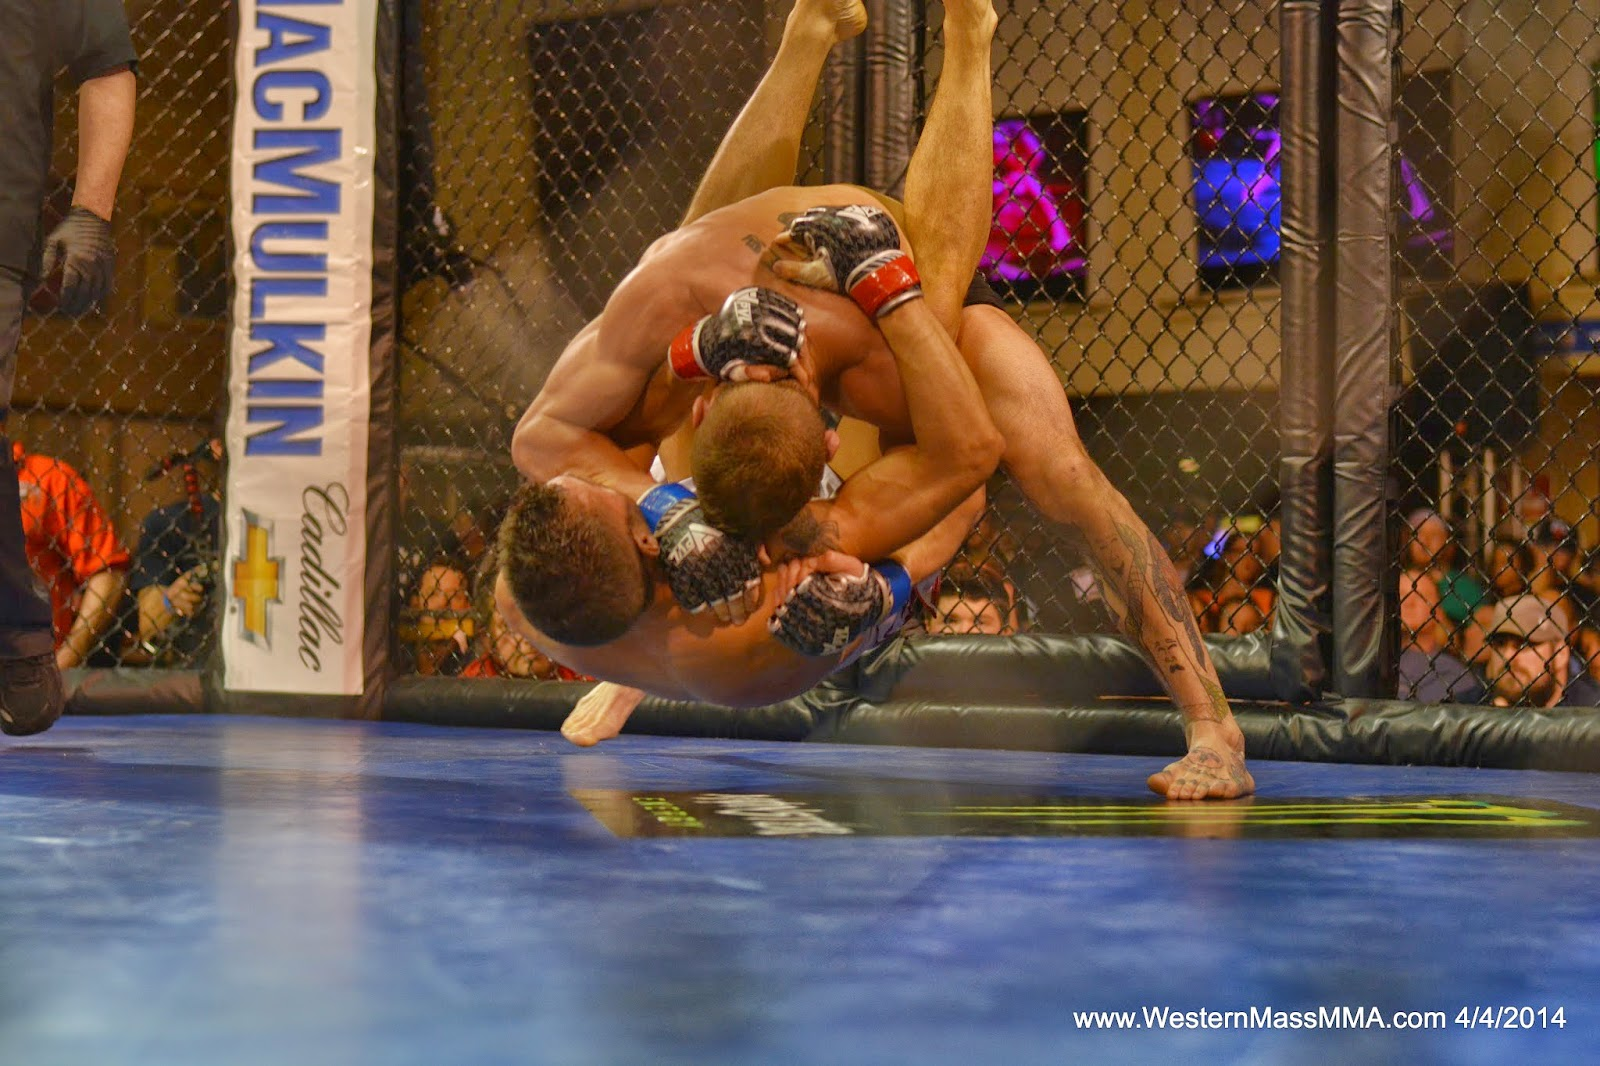 WesternMassMMA com Media, News, Reviews, and Opinions: COMBAT ZONE